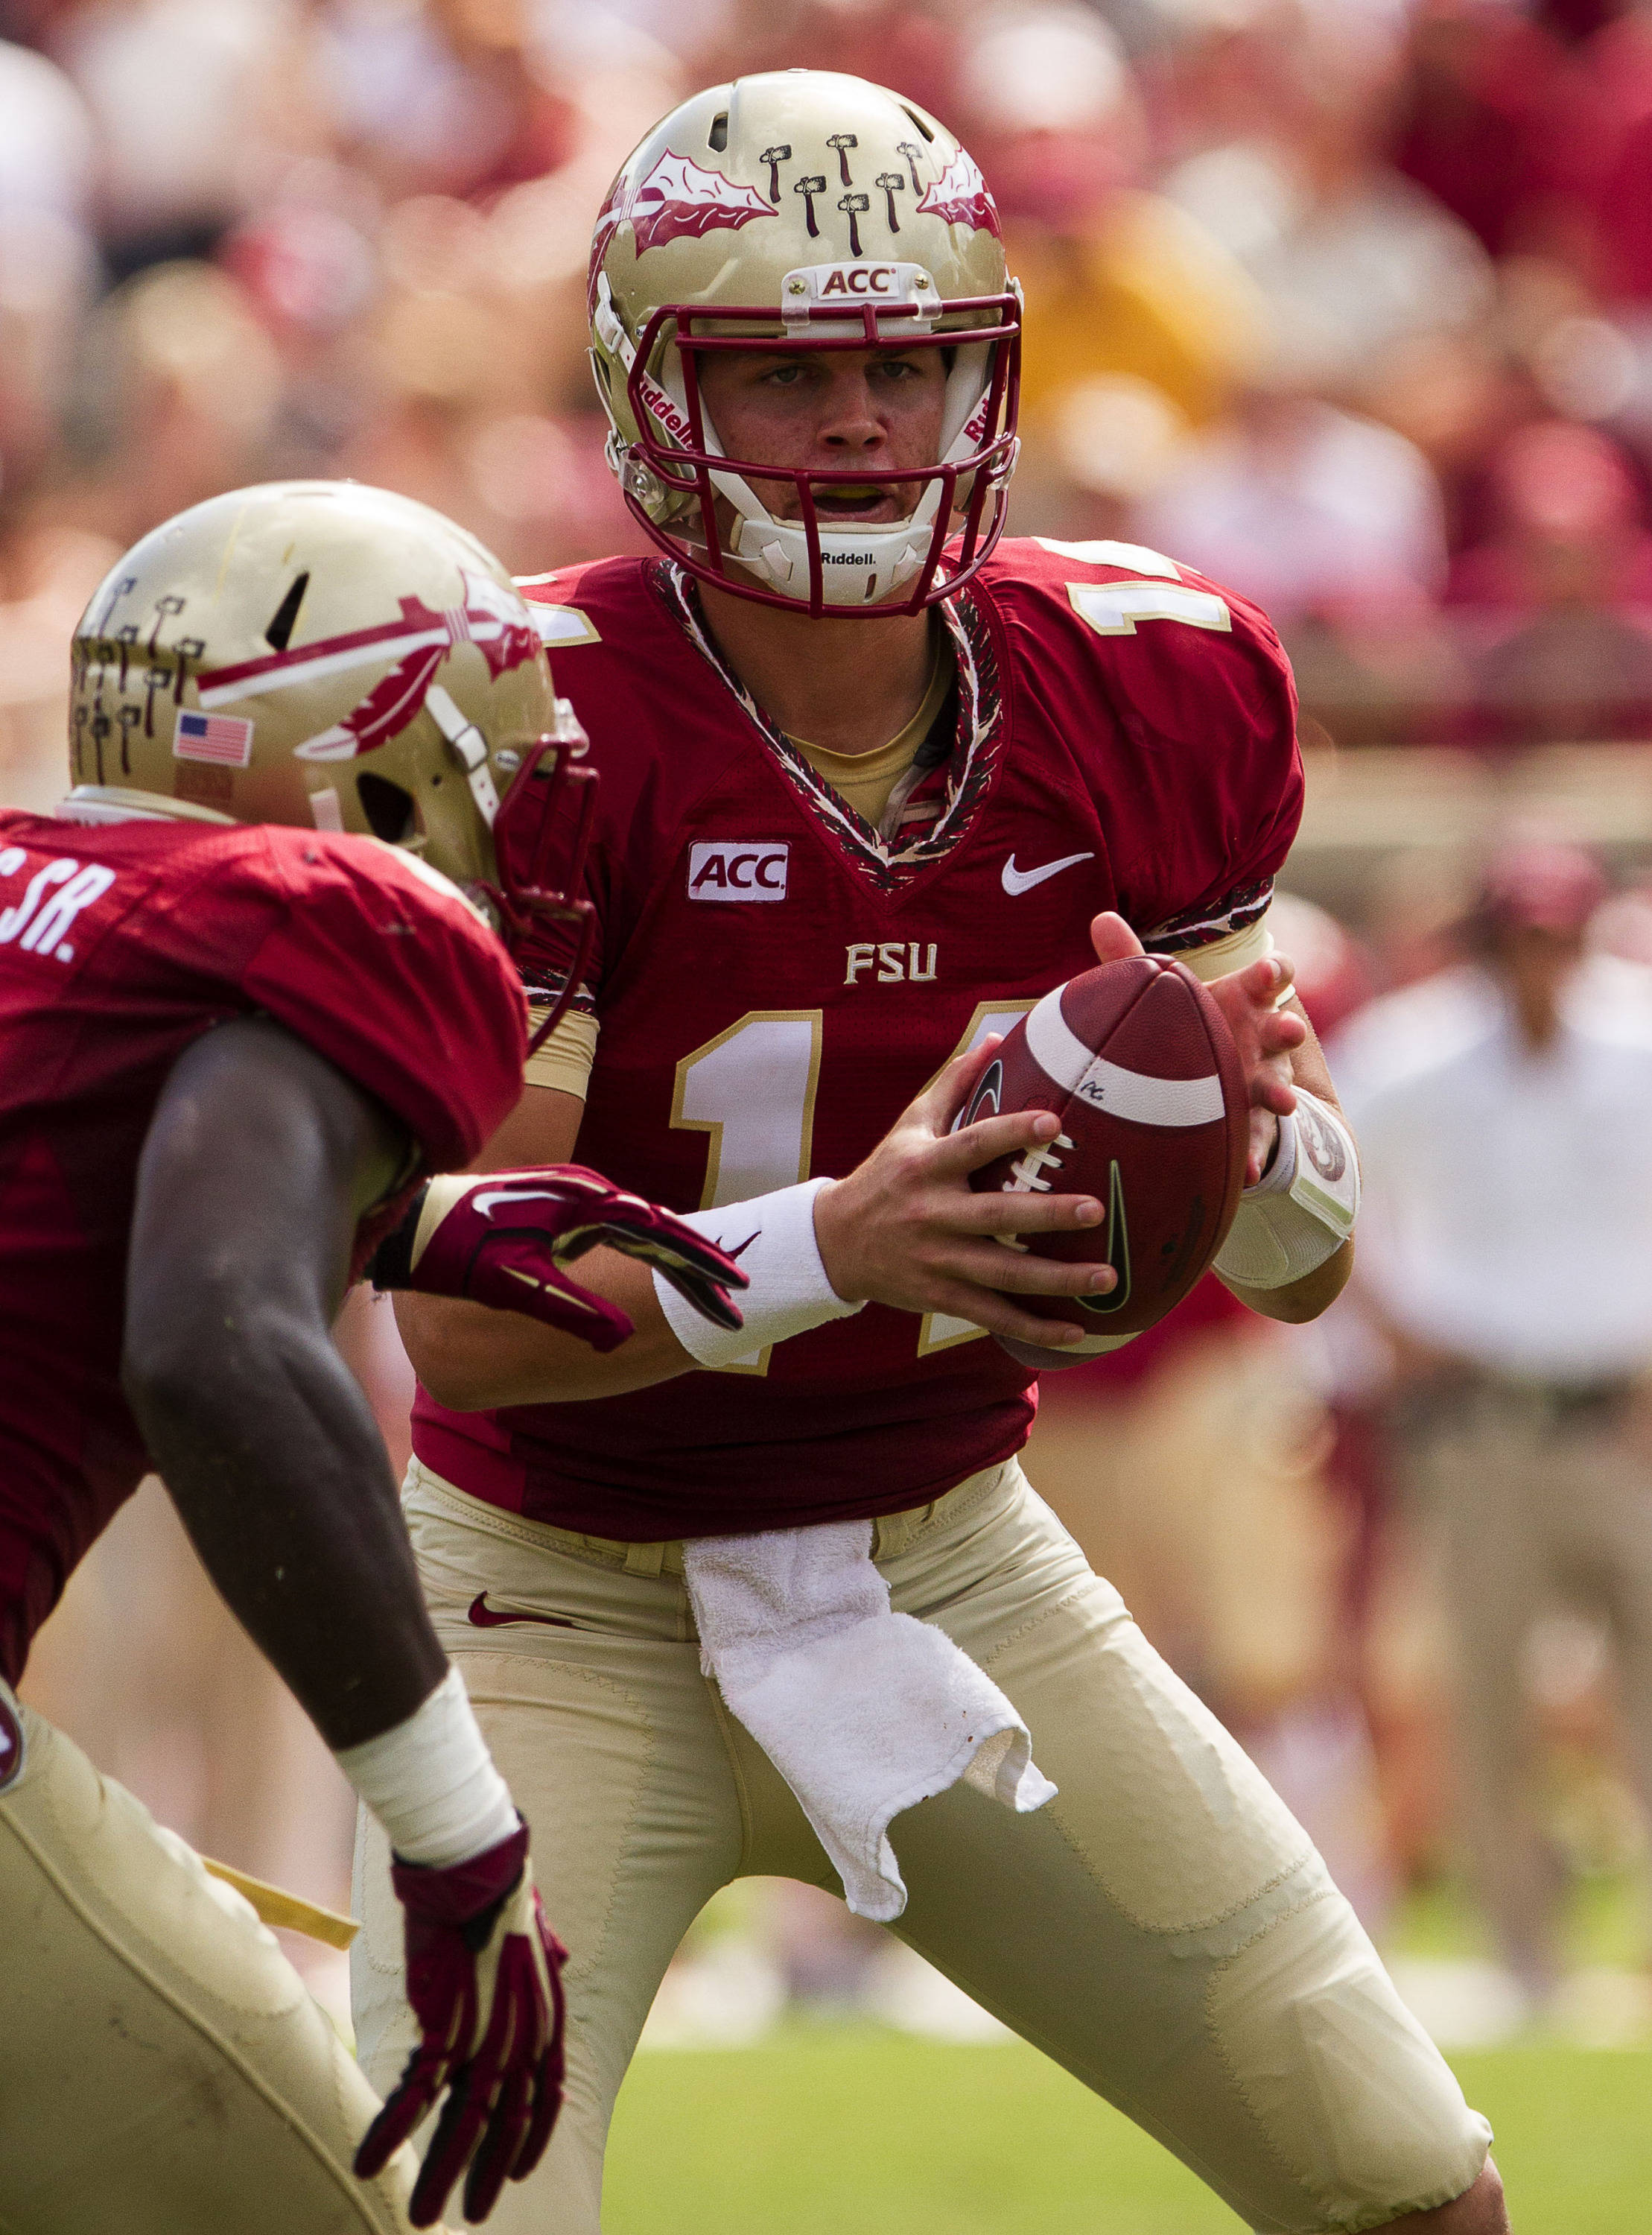 Jacob Coker (14) during FSU Football's 63-0 shutout of Maryland on Saturday, October 5, 2013 in Tallahassee, Fla.